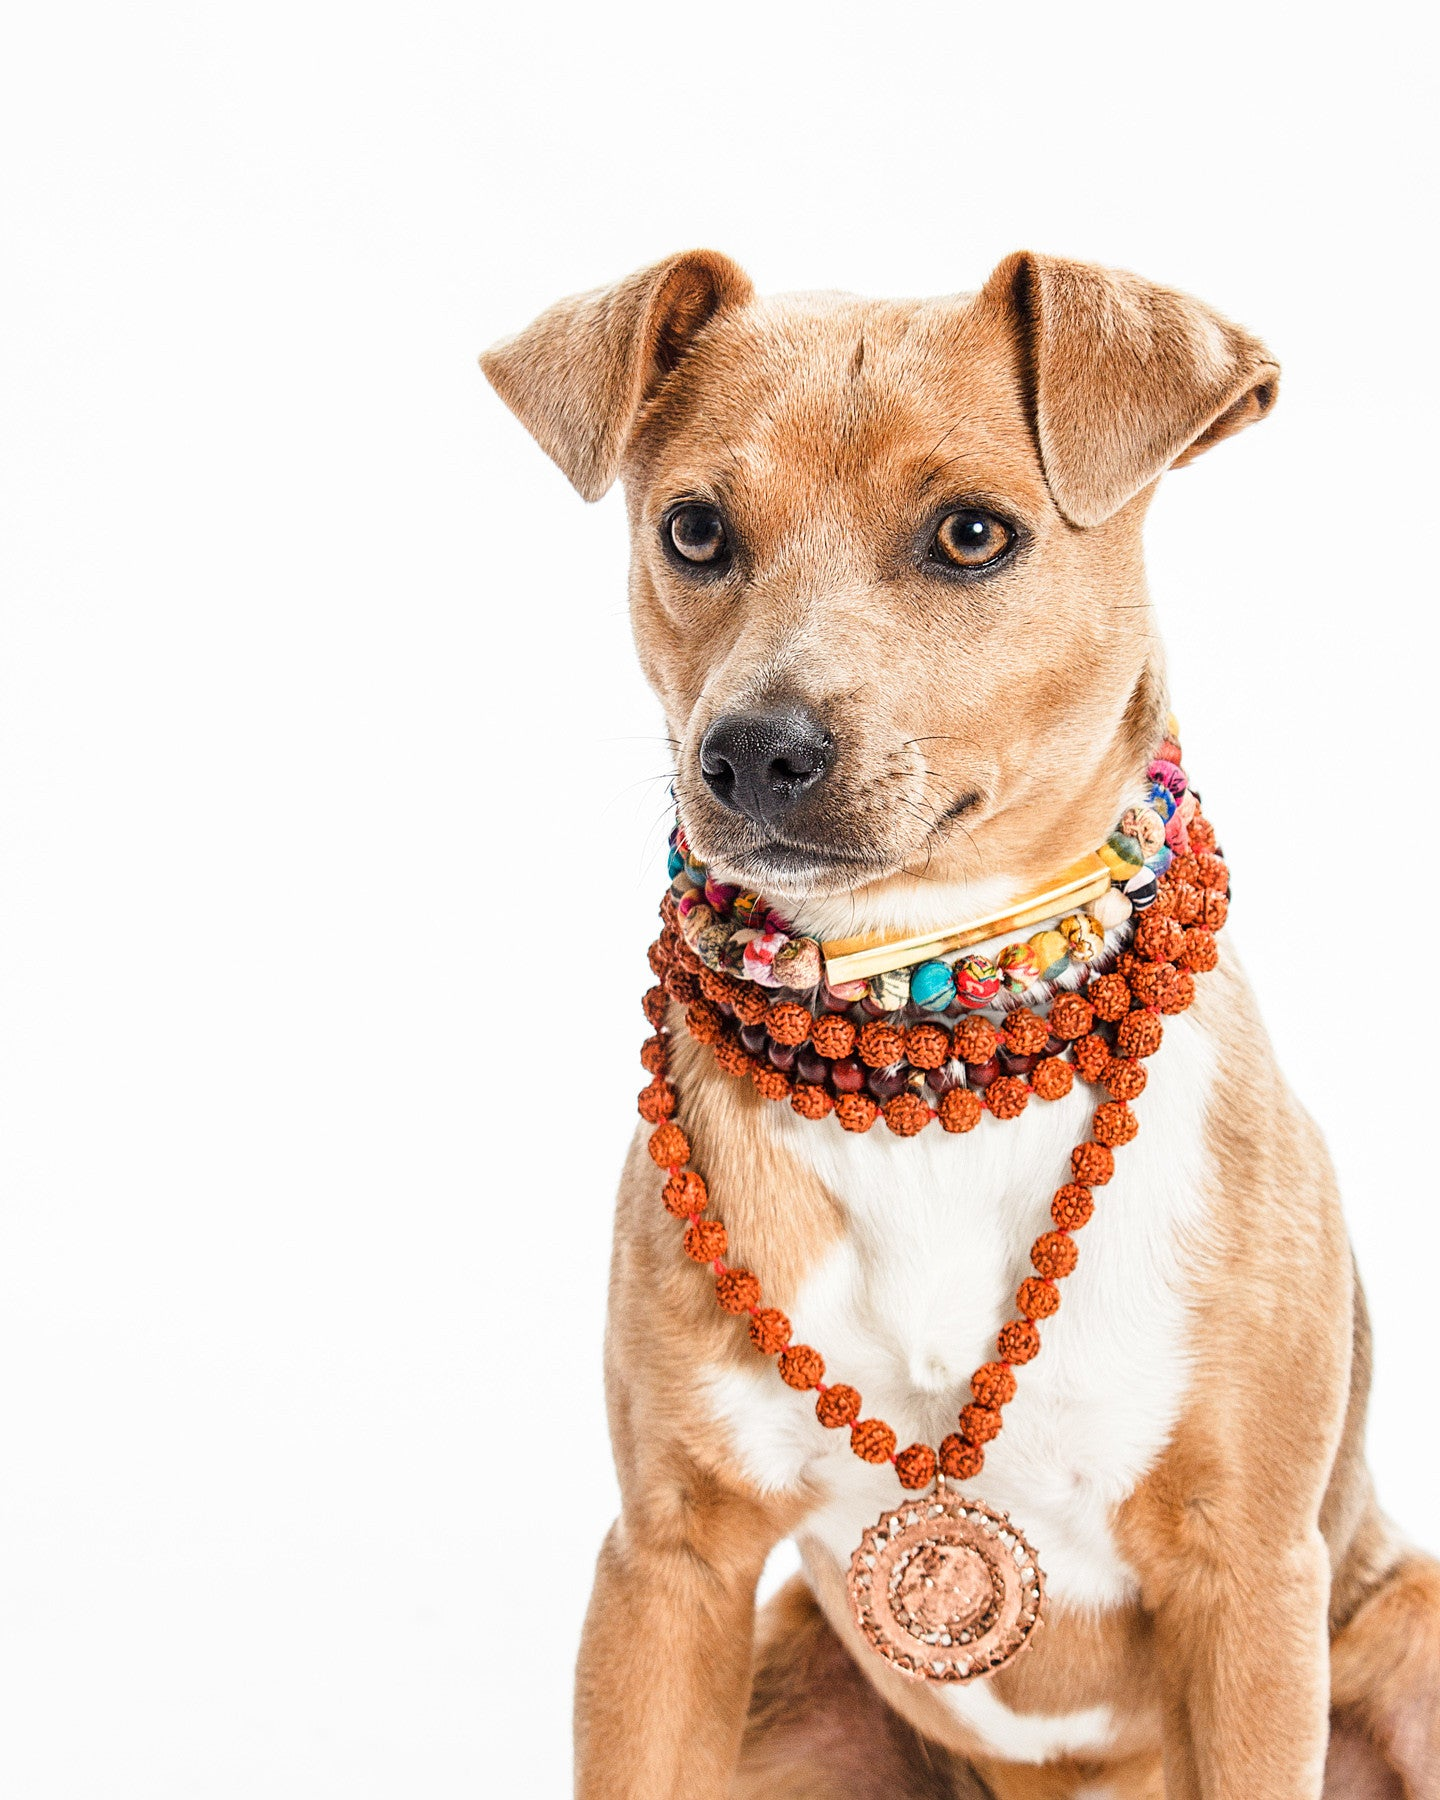 Jimmy Chew the Zen Master in our vintage Rudraksha Bead Necklace